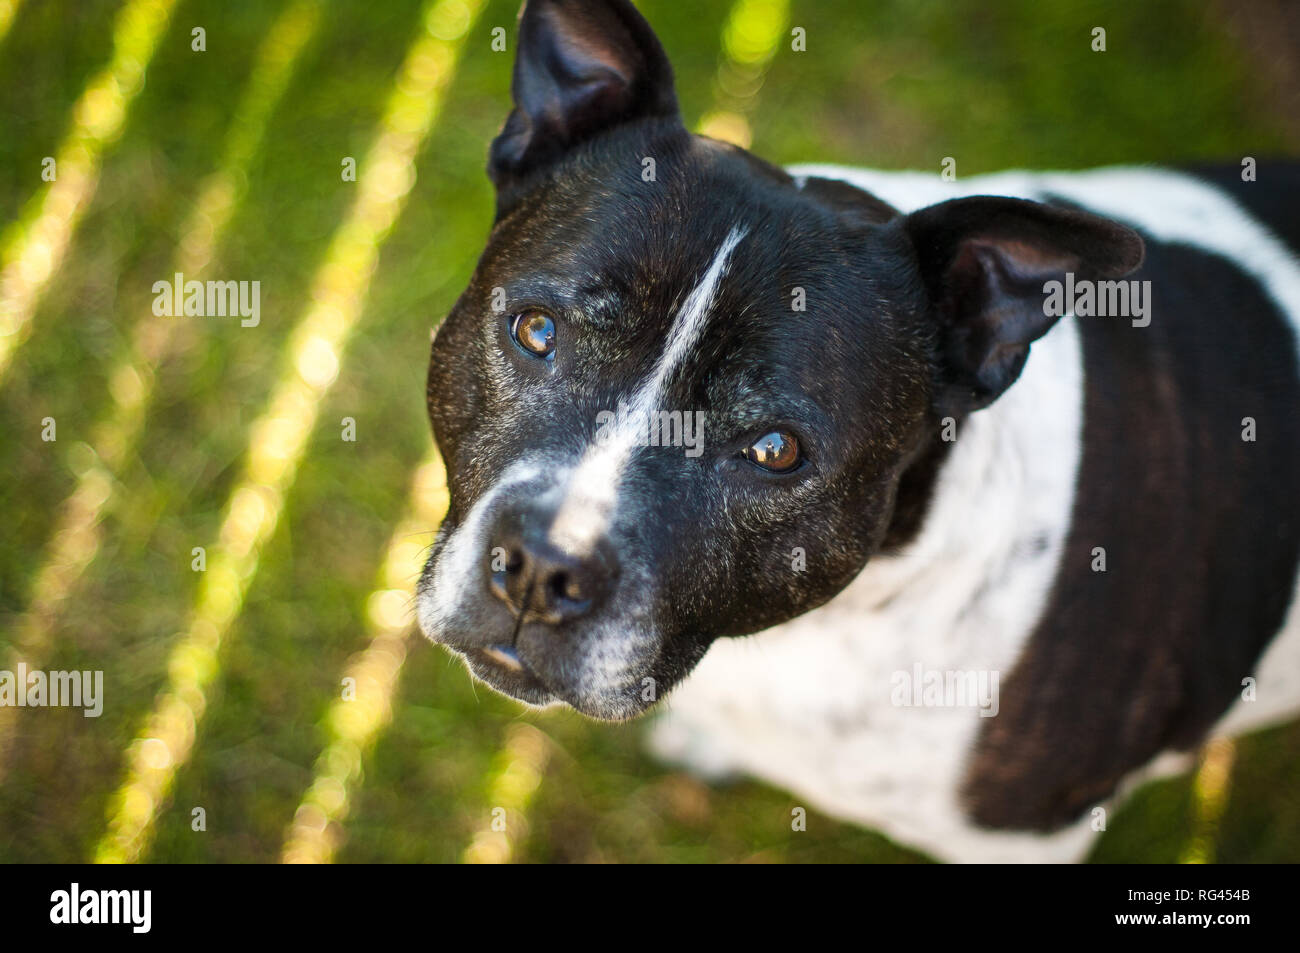 Staffordshire bull terrier with direct eye contact - Stock Image